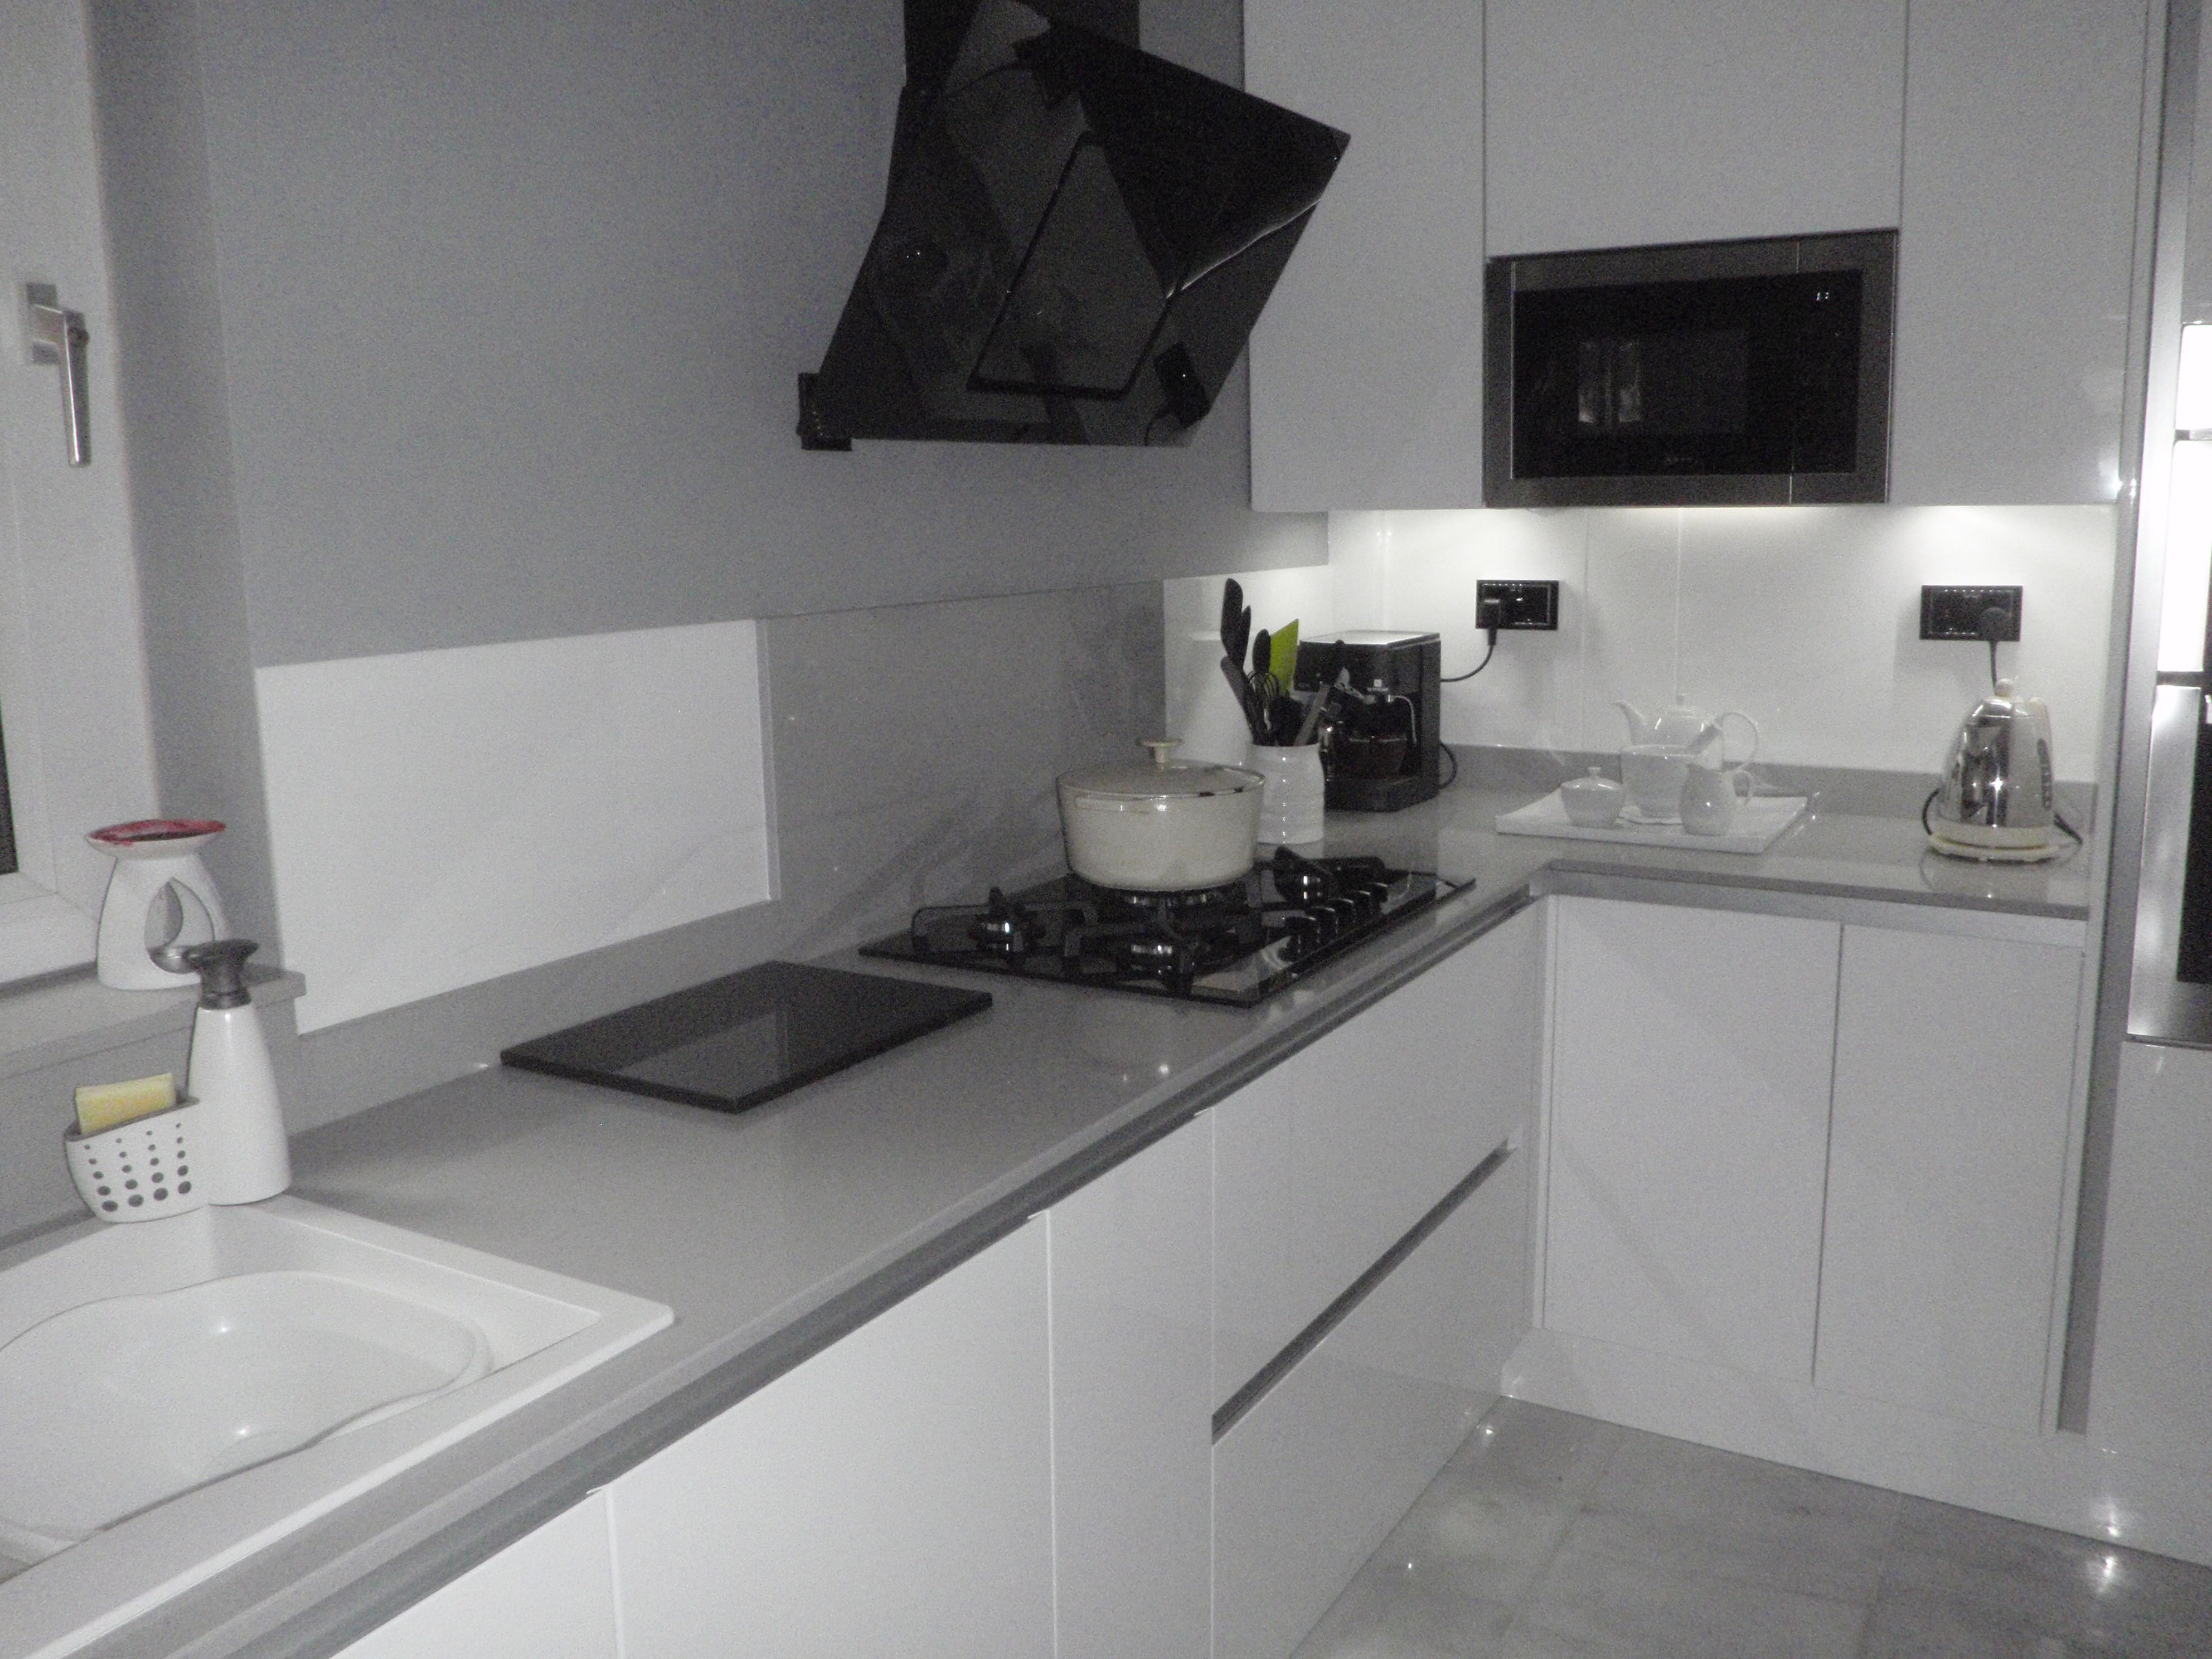 White Acrylic Makes A Great Splashback In This Stunning Kitchen Acrylic Wall Panels Acrylic Kitchen Splashbacks Kitchen